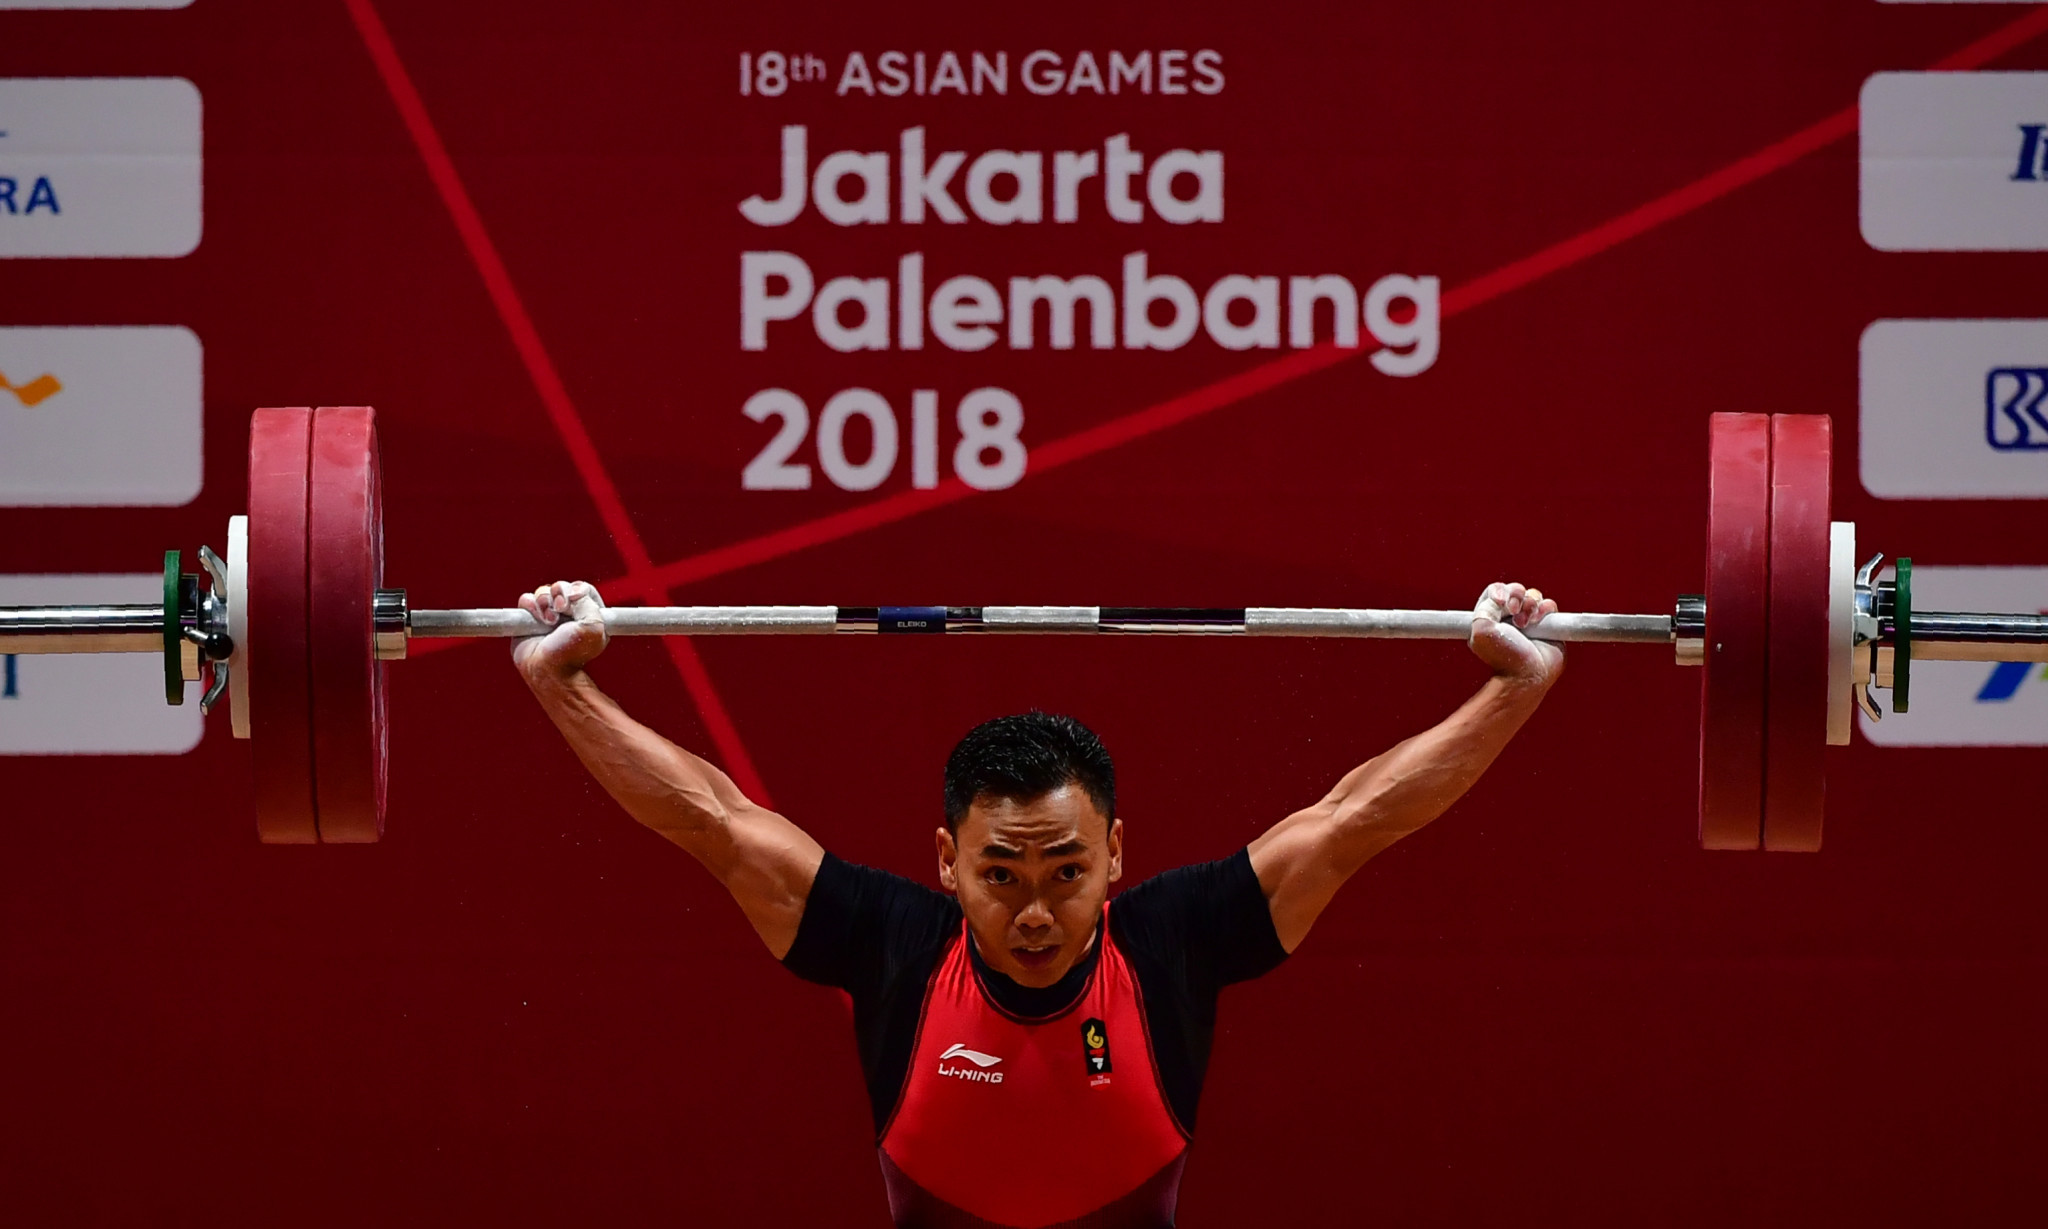 World champion Eko Yuli Irawan of Indonesia is among the star athletes set to compete in Fuzhou ©Getty Images